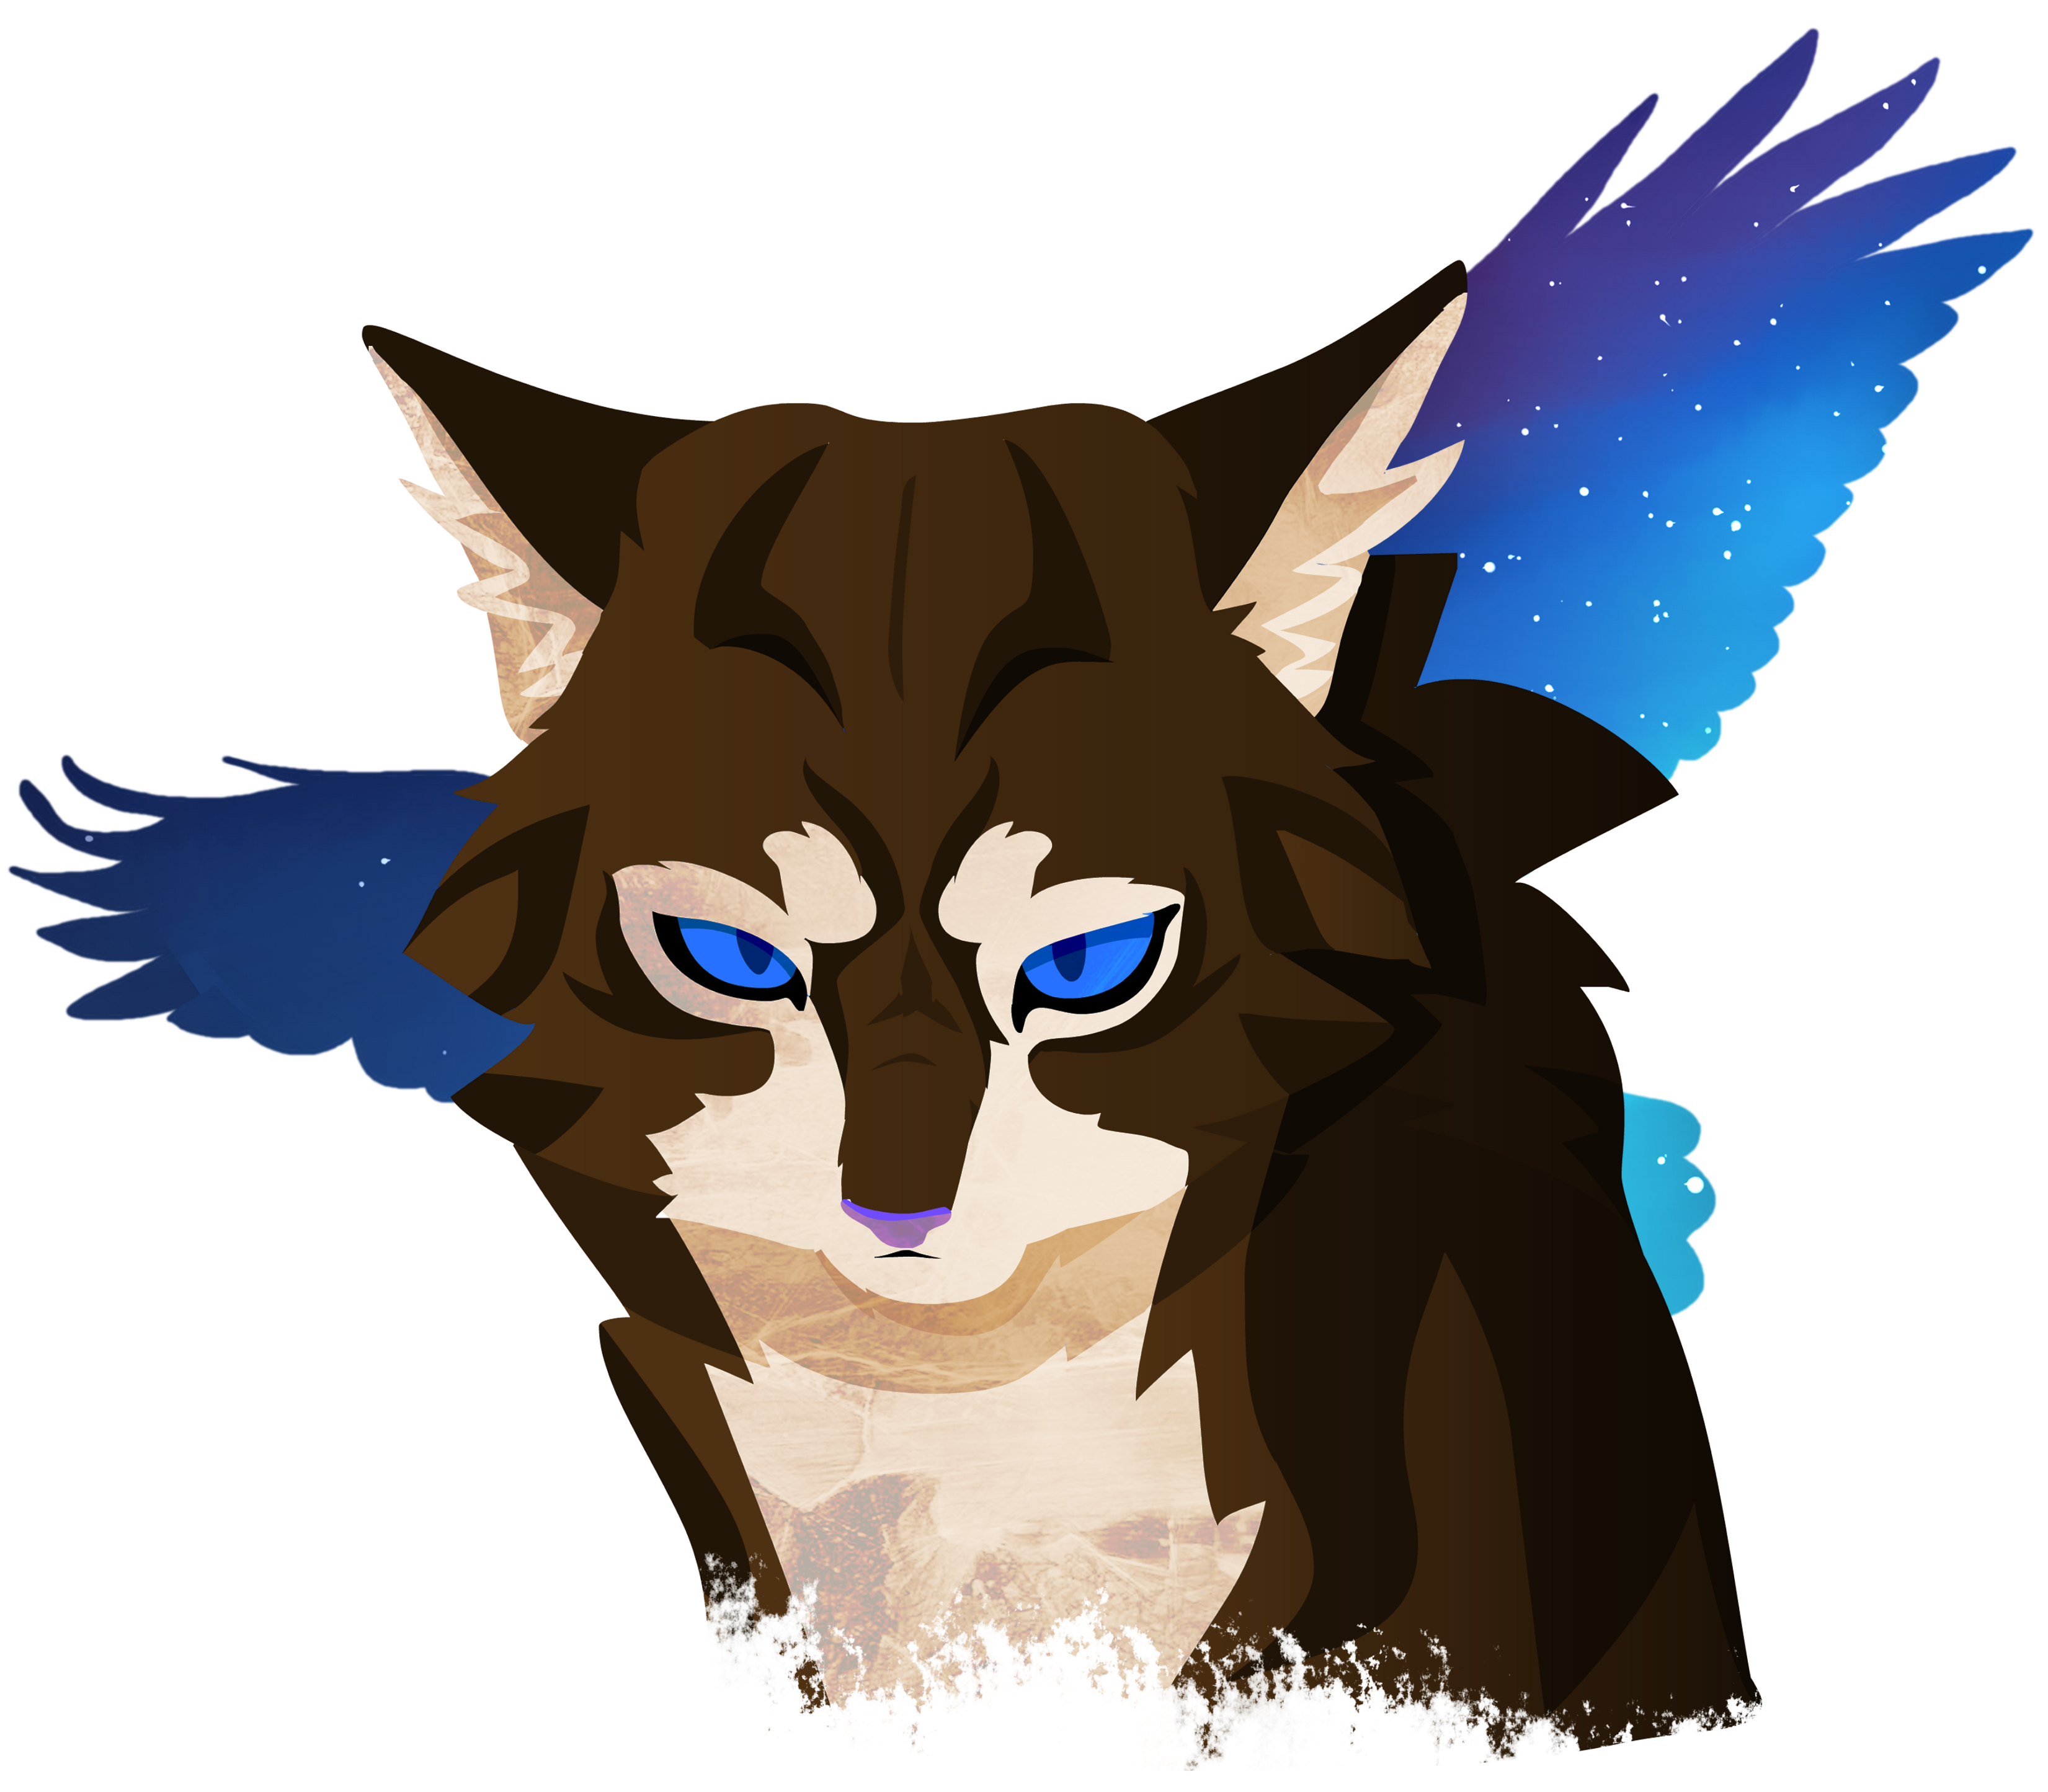 In Warrior Cats Roblox What Does App Mean